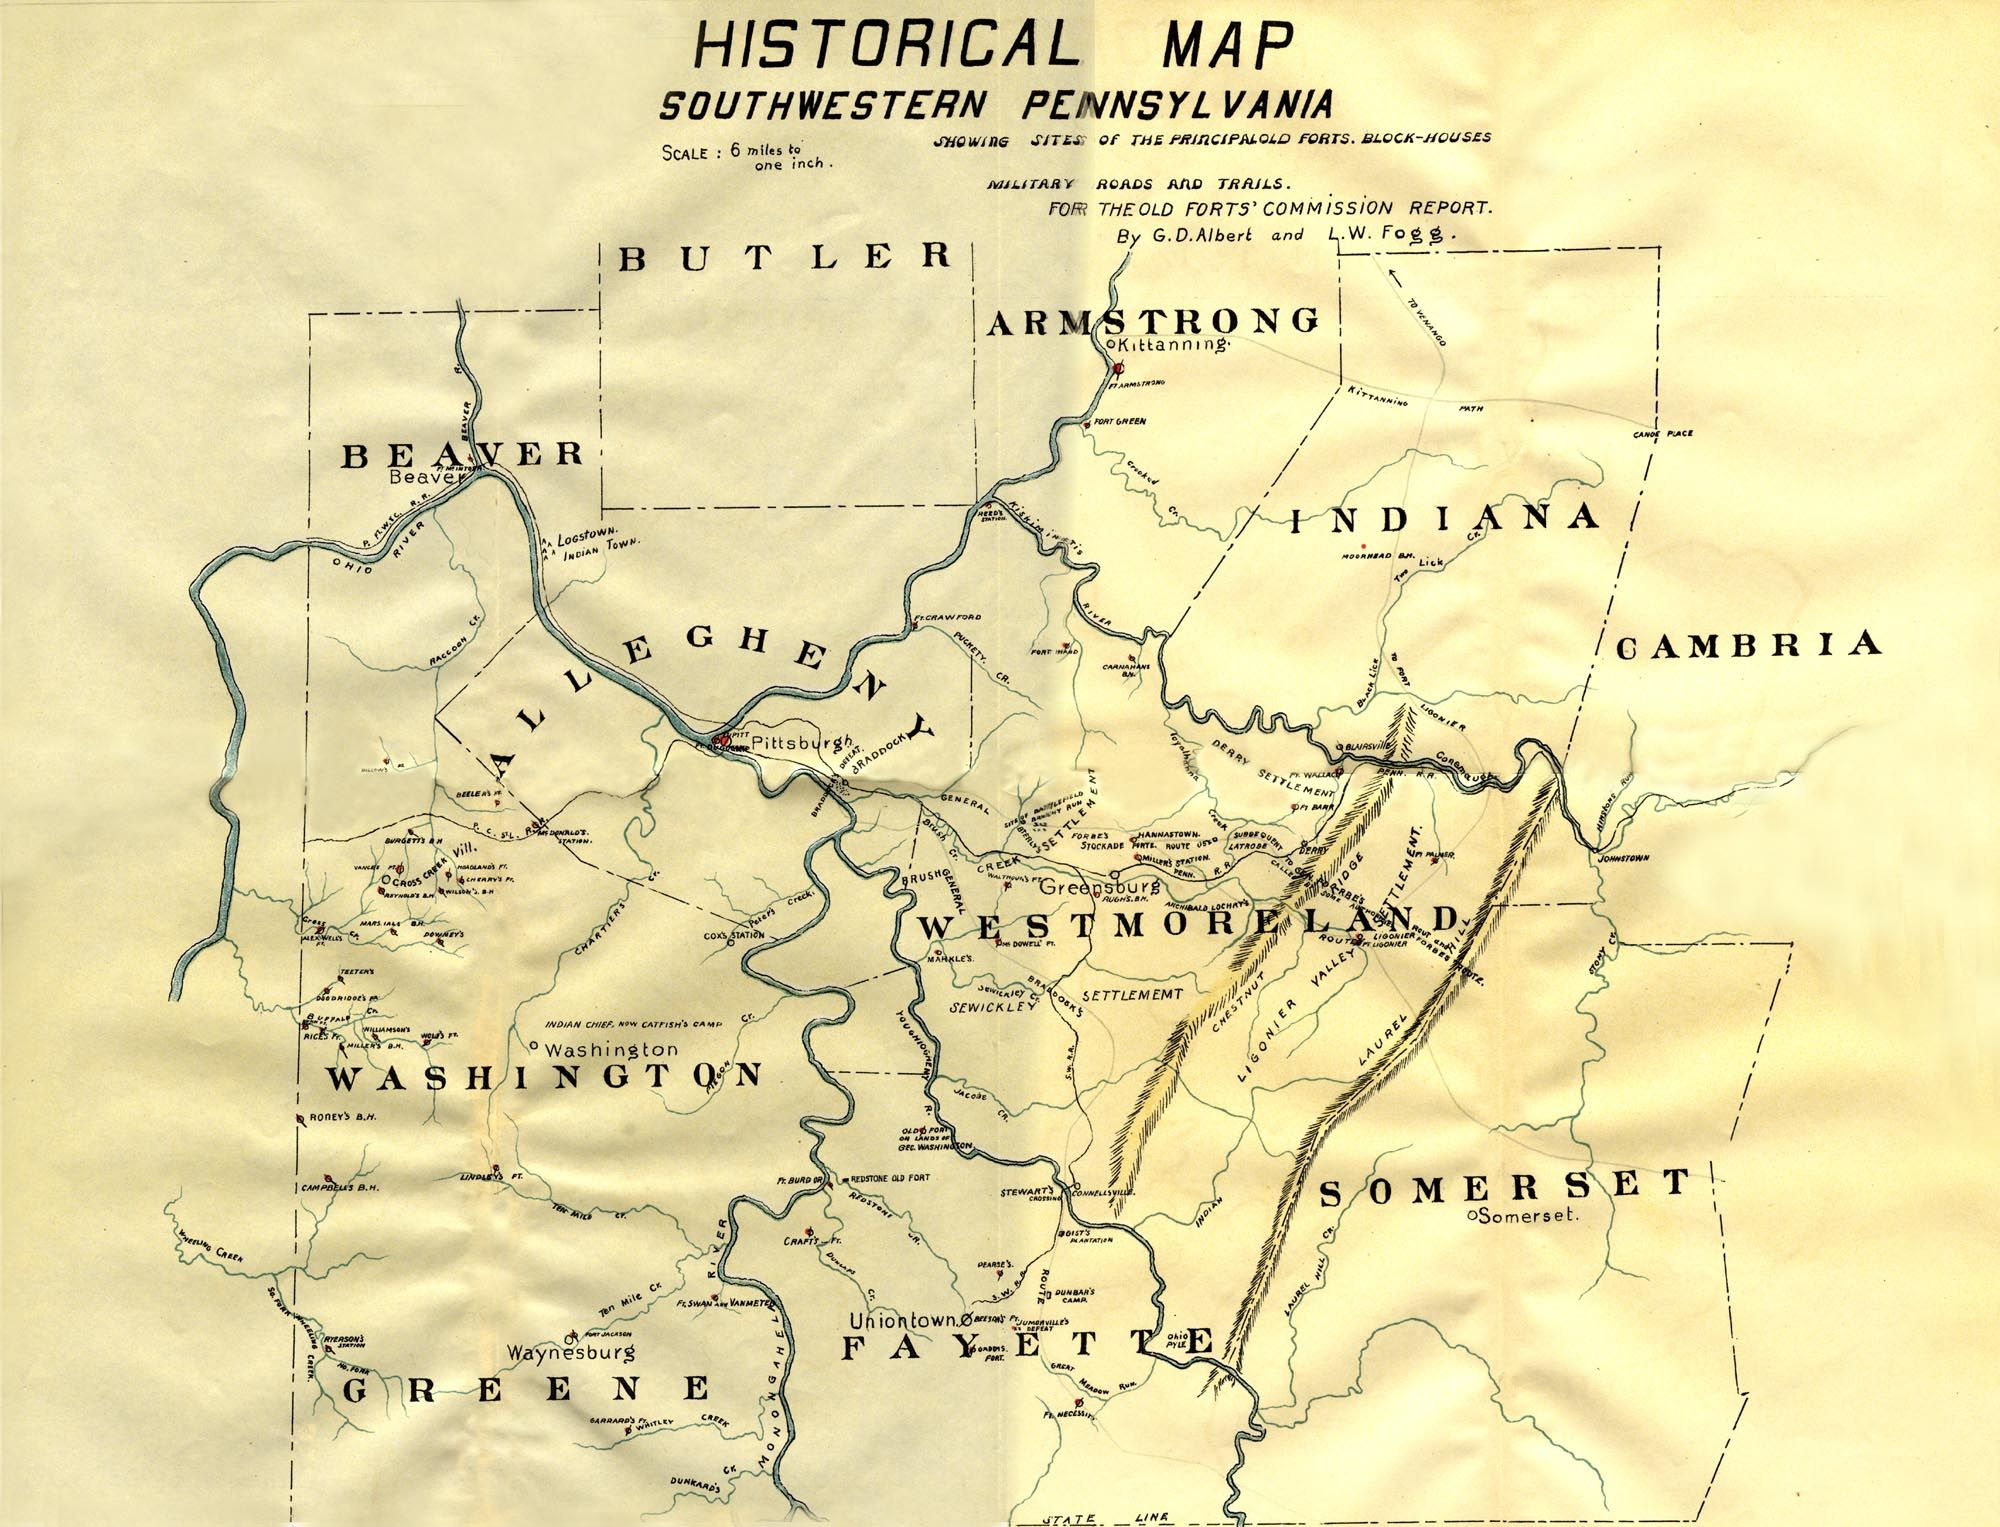 Historical Map of Southwestern Pennsylvania | Cartography in ... on map of ms, map of ohio, map usa, map of ia, map of pennsylvania with cities, map of tn, map of harrisburg pennsylvania, google maps pa, map of colonial pennsylvania, map of new york, map of wi, map of panama, county map pa, map of il, map of az, map of oh, map of wv, map of western pennsylvania, map of mn, map of philadelphia,